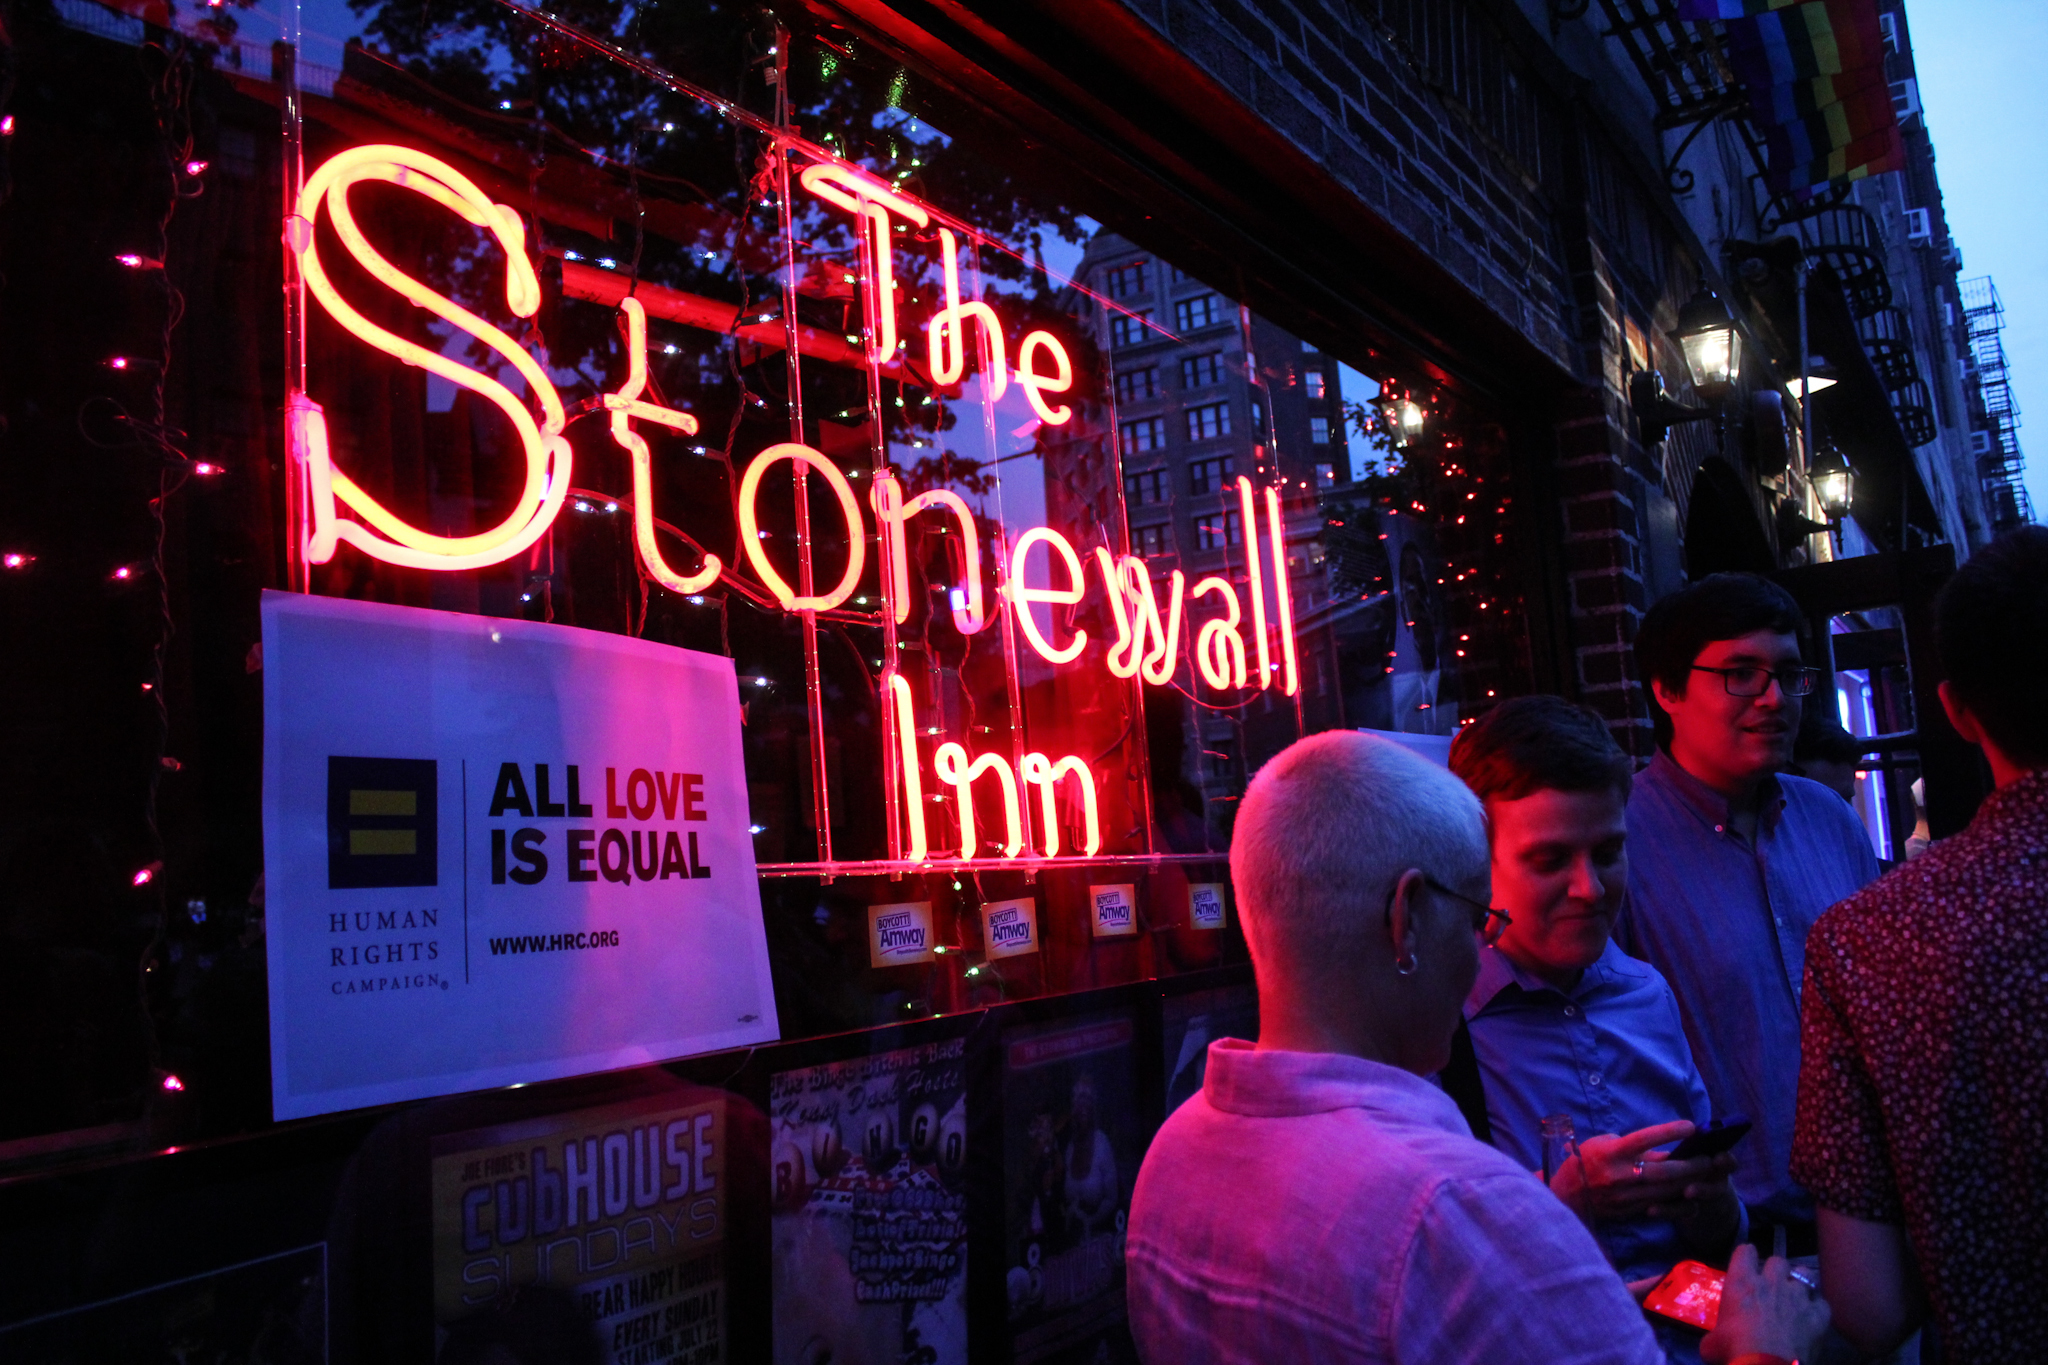 The best gay bars in the West Village